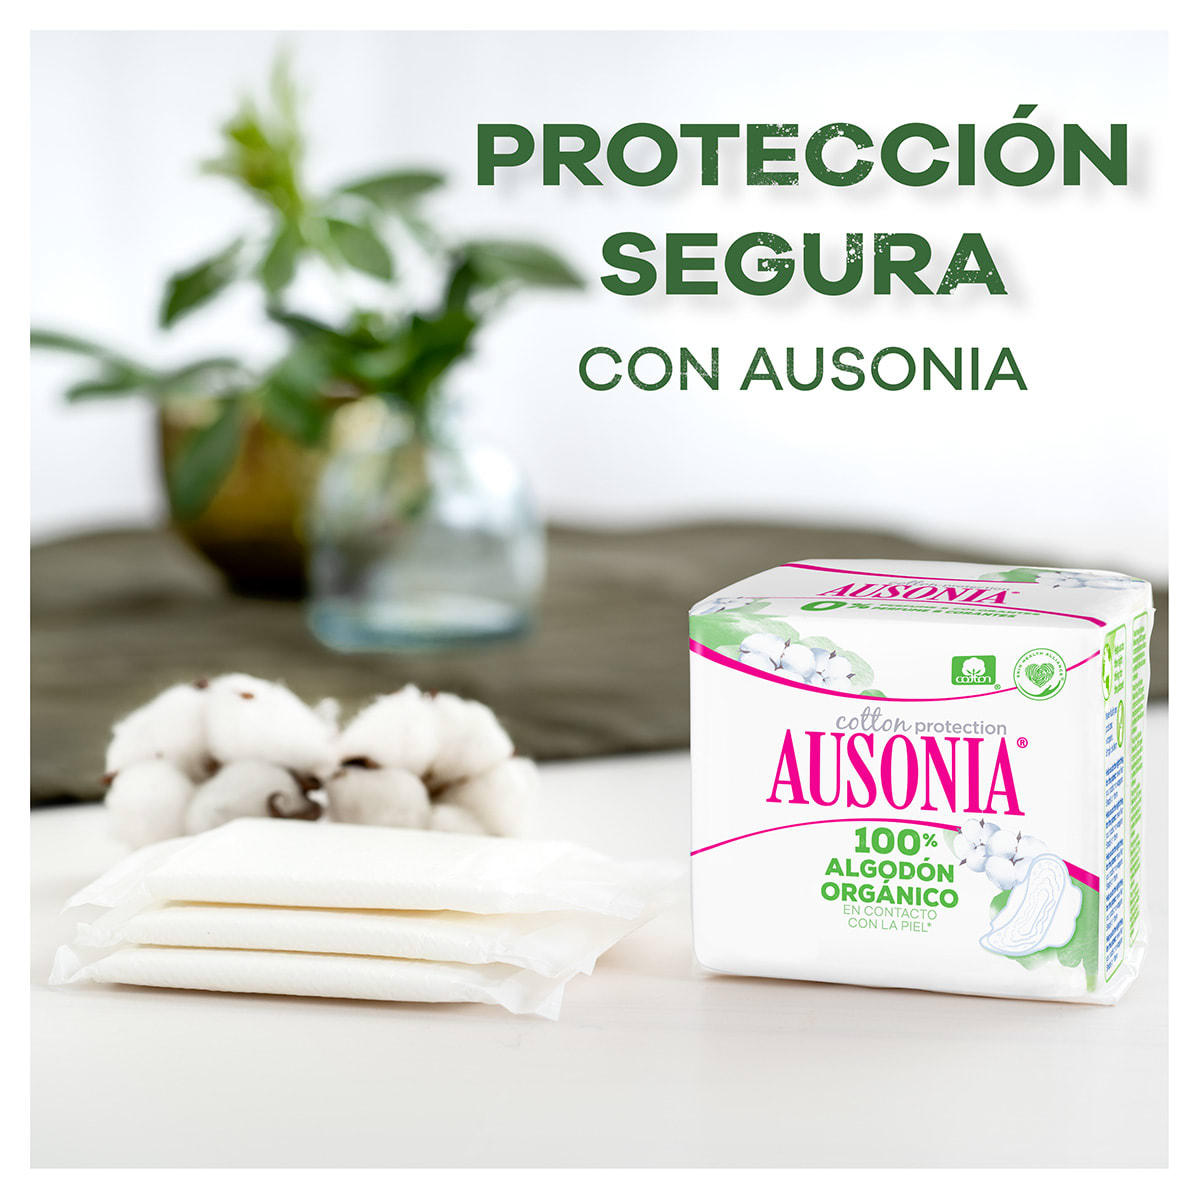 AUSONIA Cotton Protection Compresas